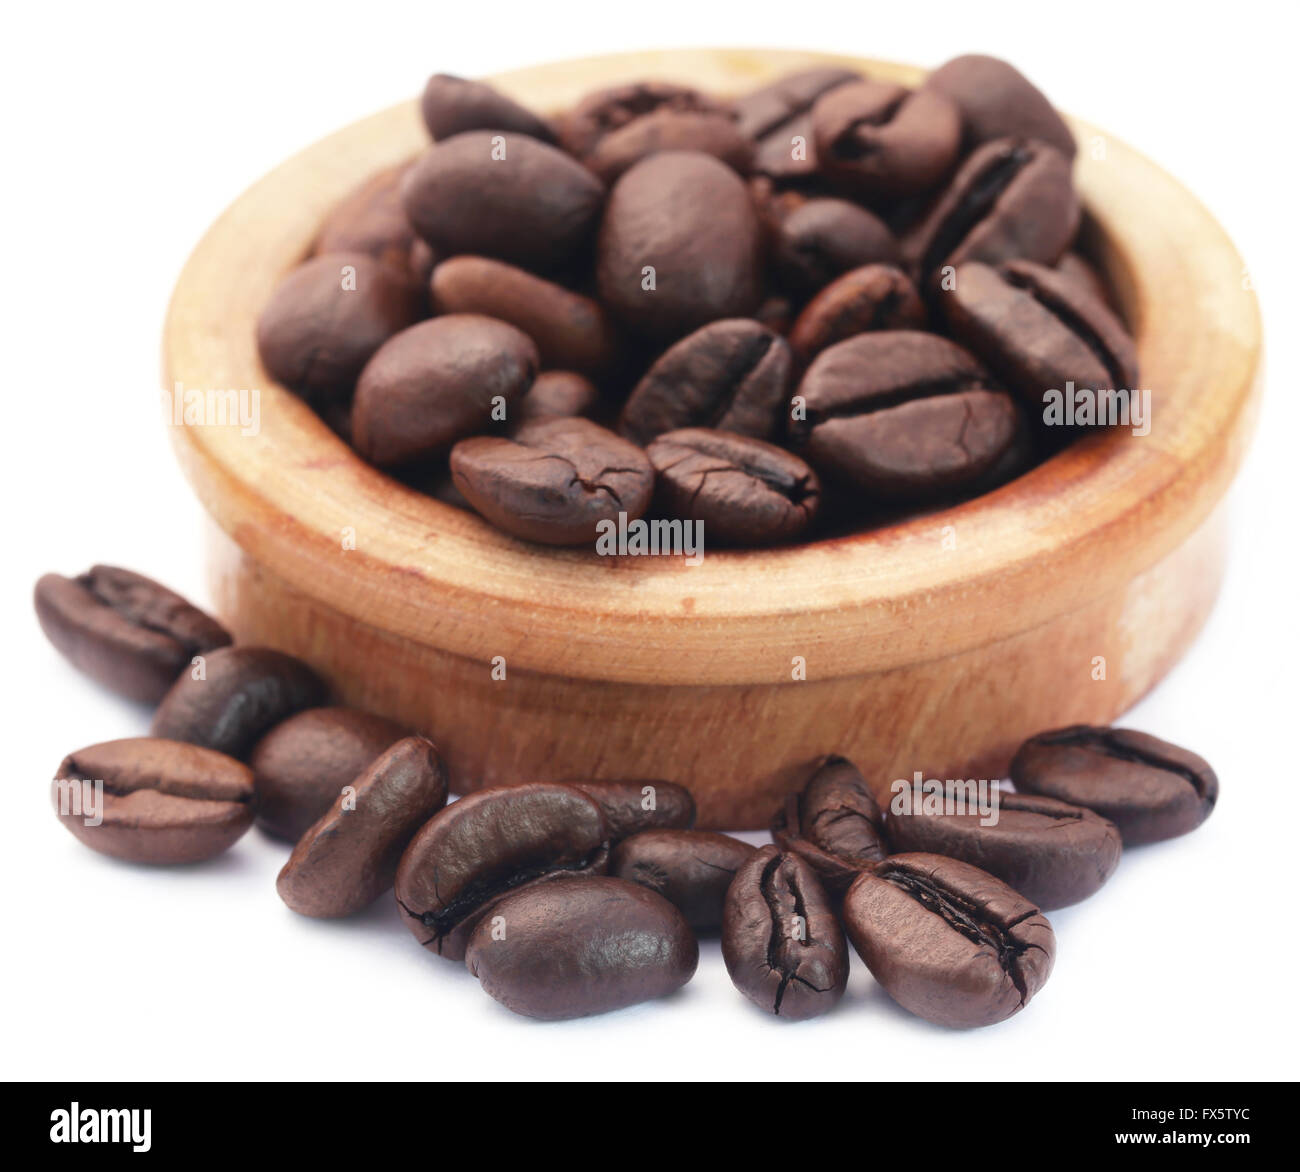 Roasted coffee bean in a wooden bowl over white background - Stock Image